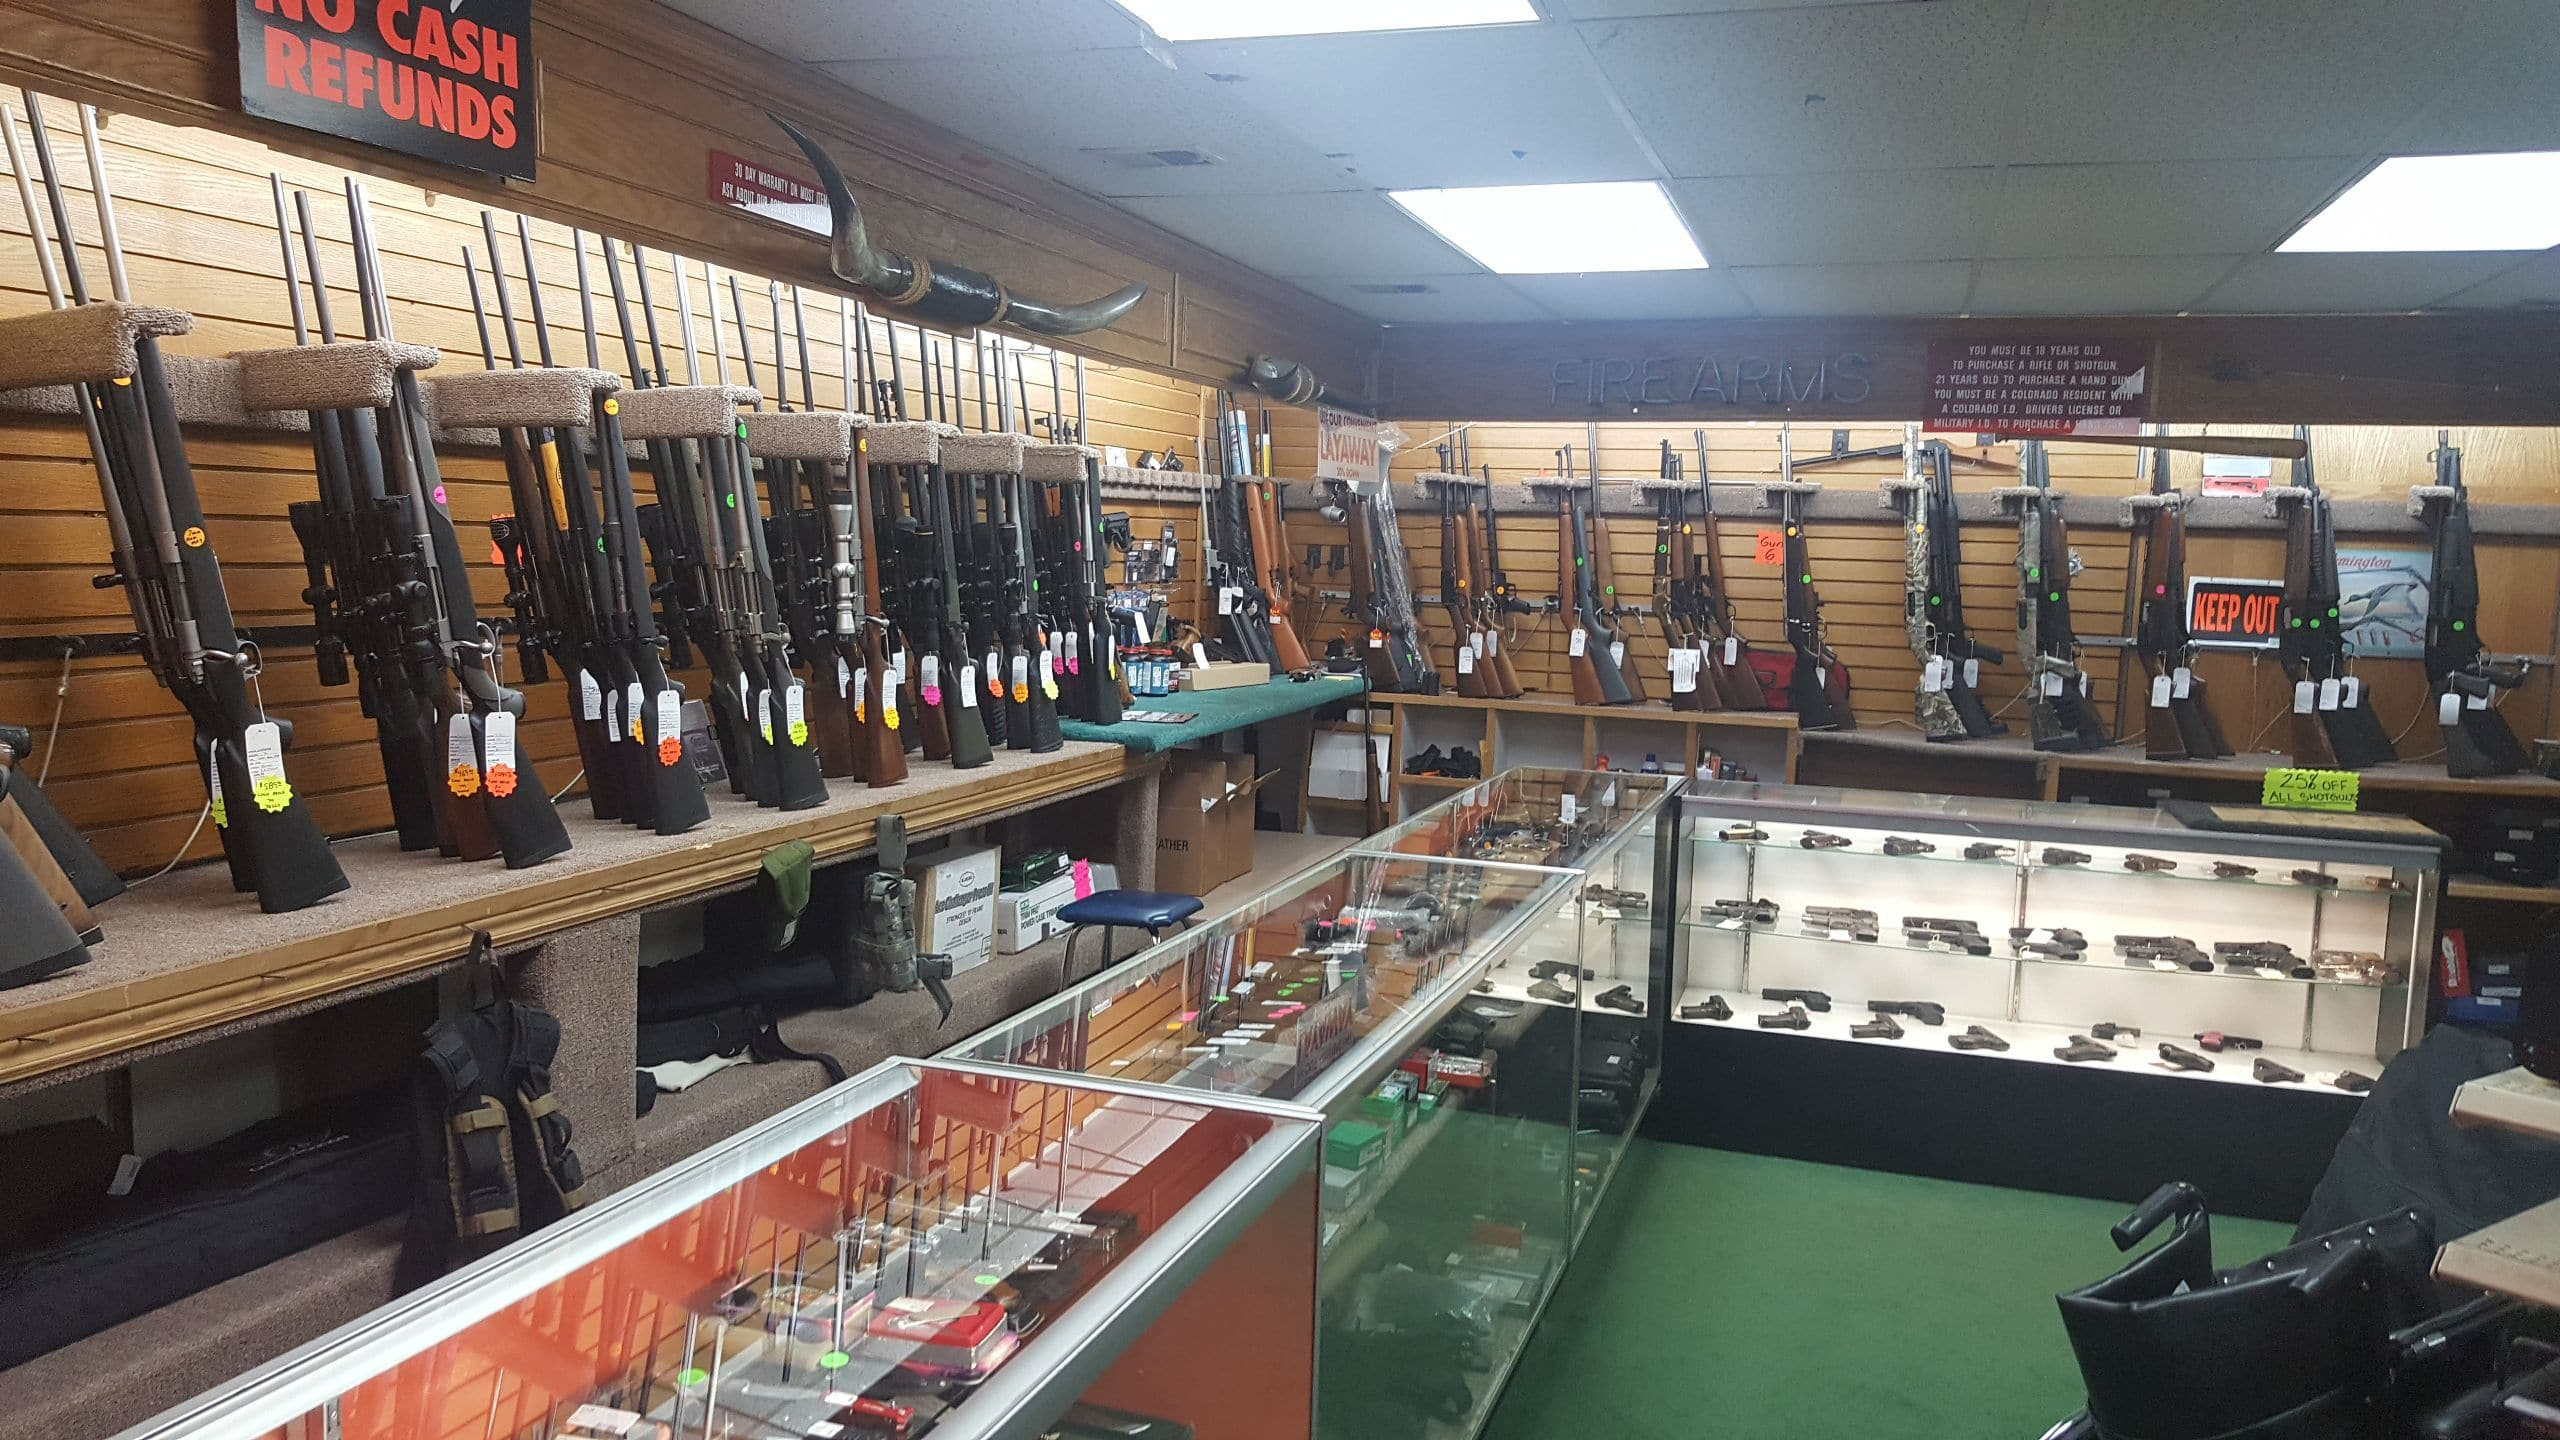 best pawn shop in colorado springs for guns jewelry electronics tools. Black Bedroom Furniture Sets. Home Design Ideas